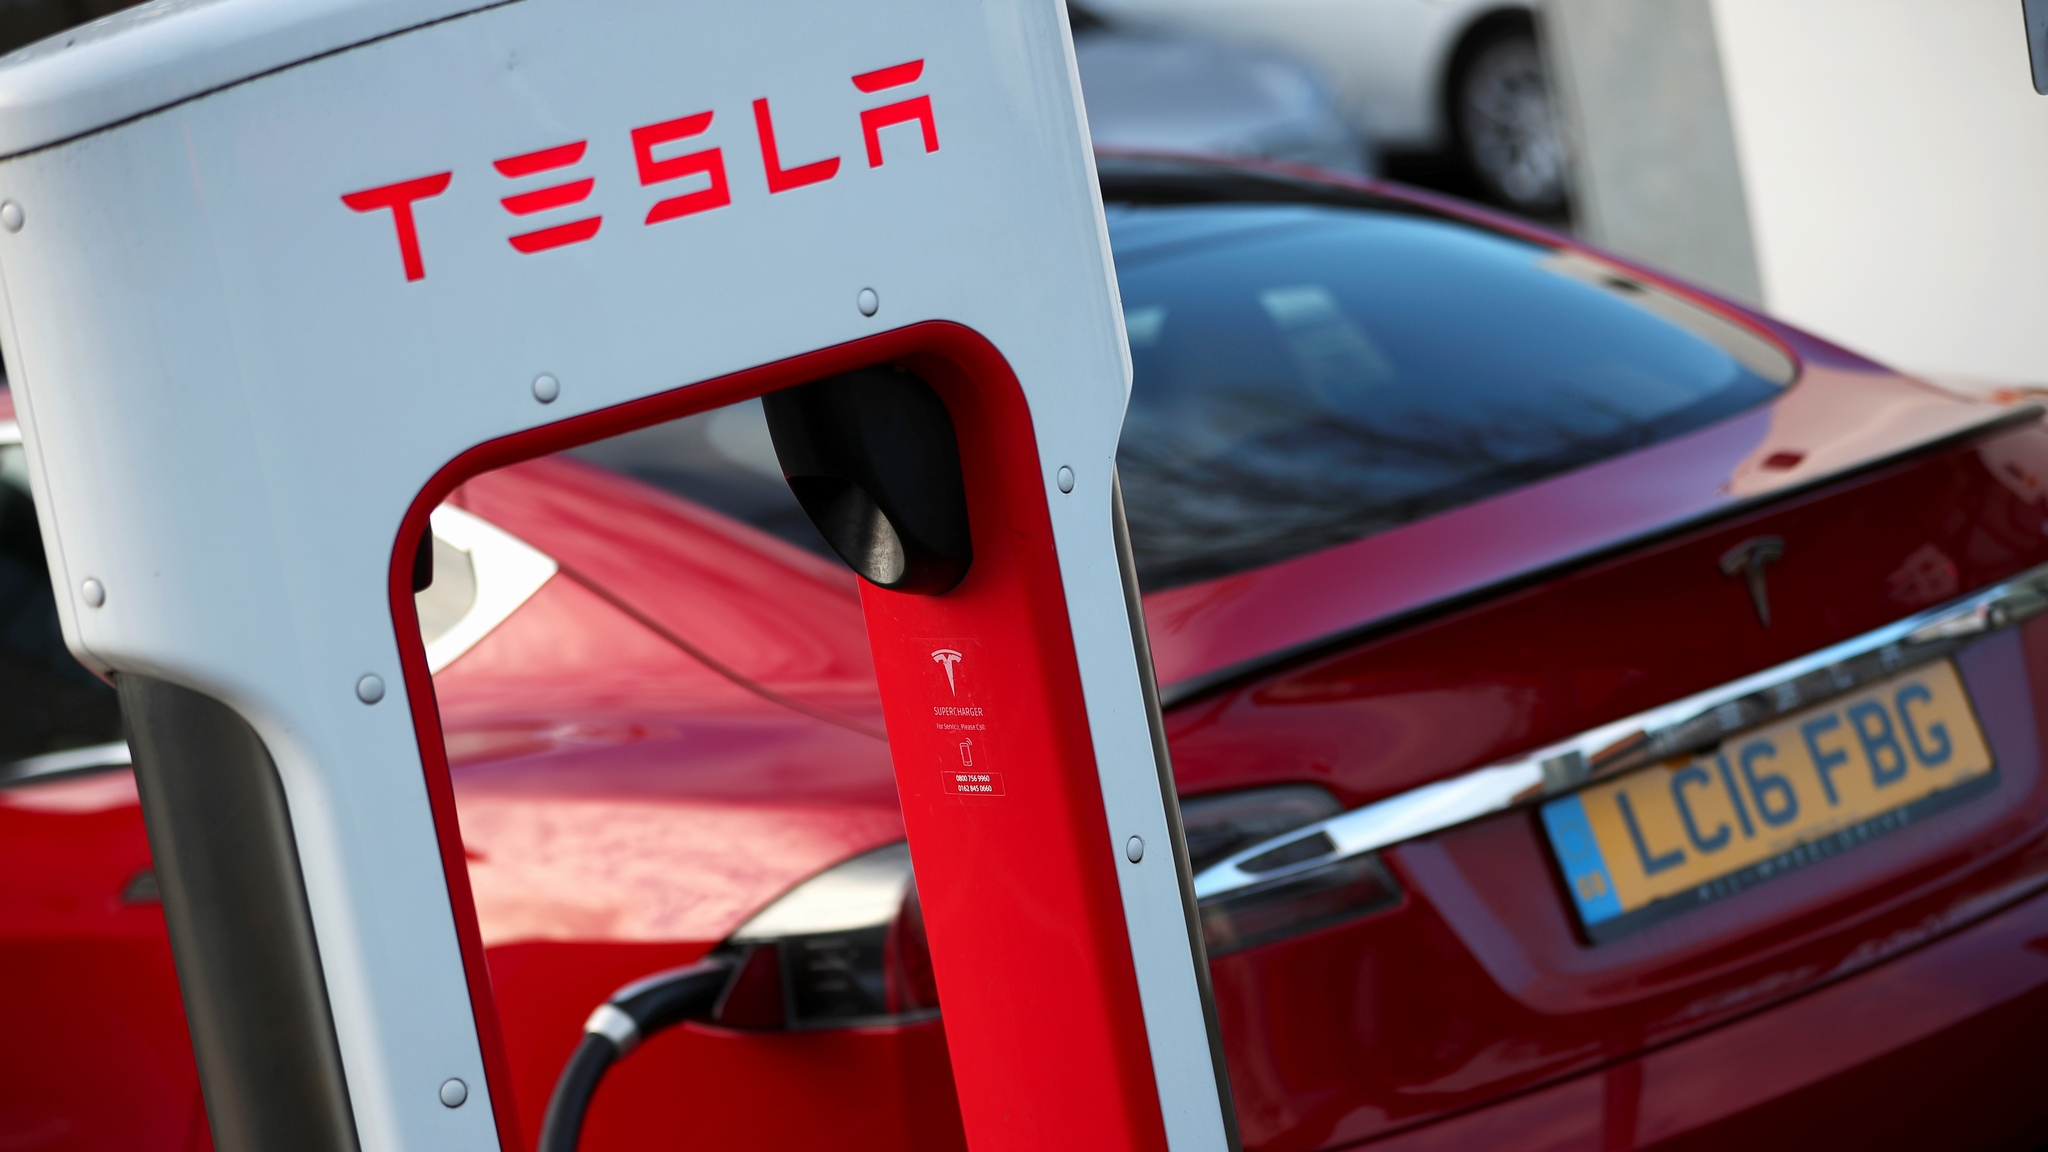 nikkei.com - Staff Writer - Tesla hints at seeking new battery suppliers in blow to Panasonic